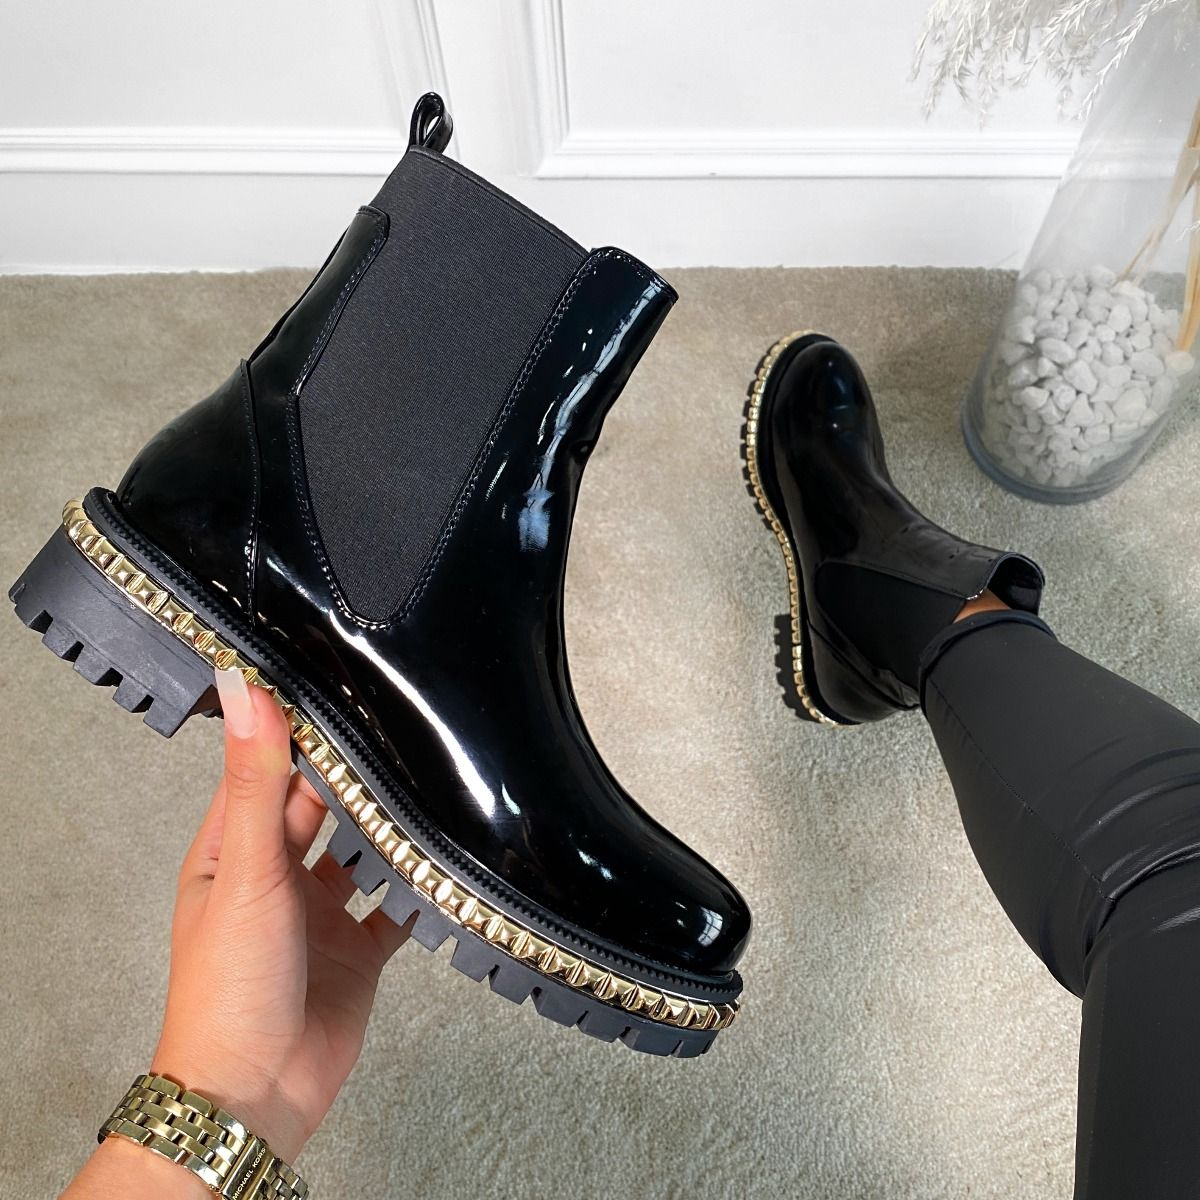 Clover Black Patent Studded Ankle Boots